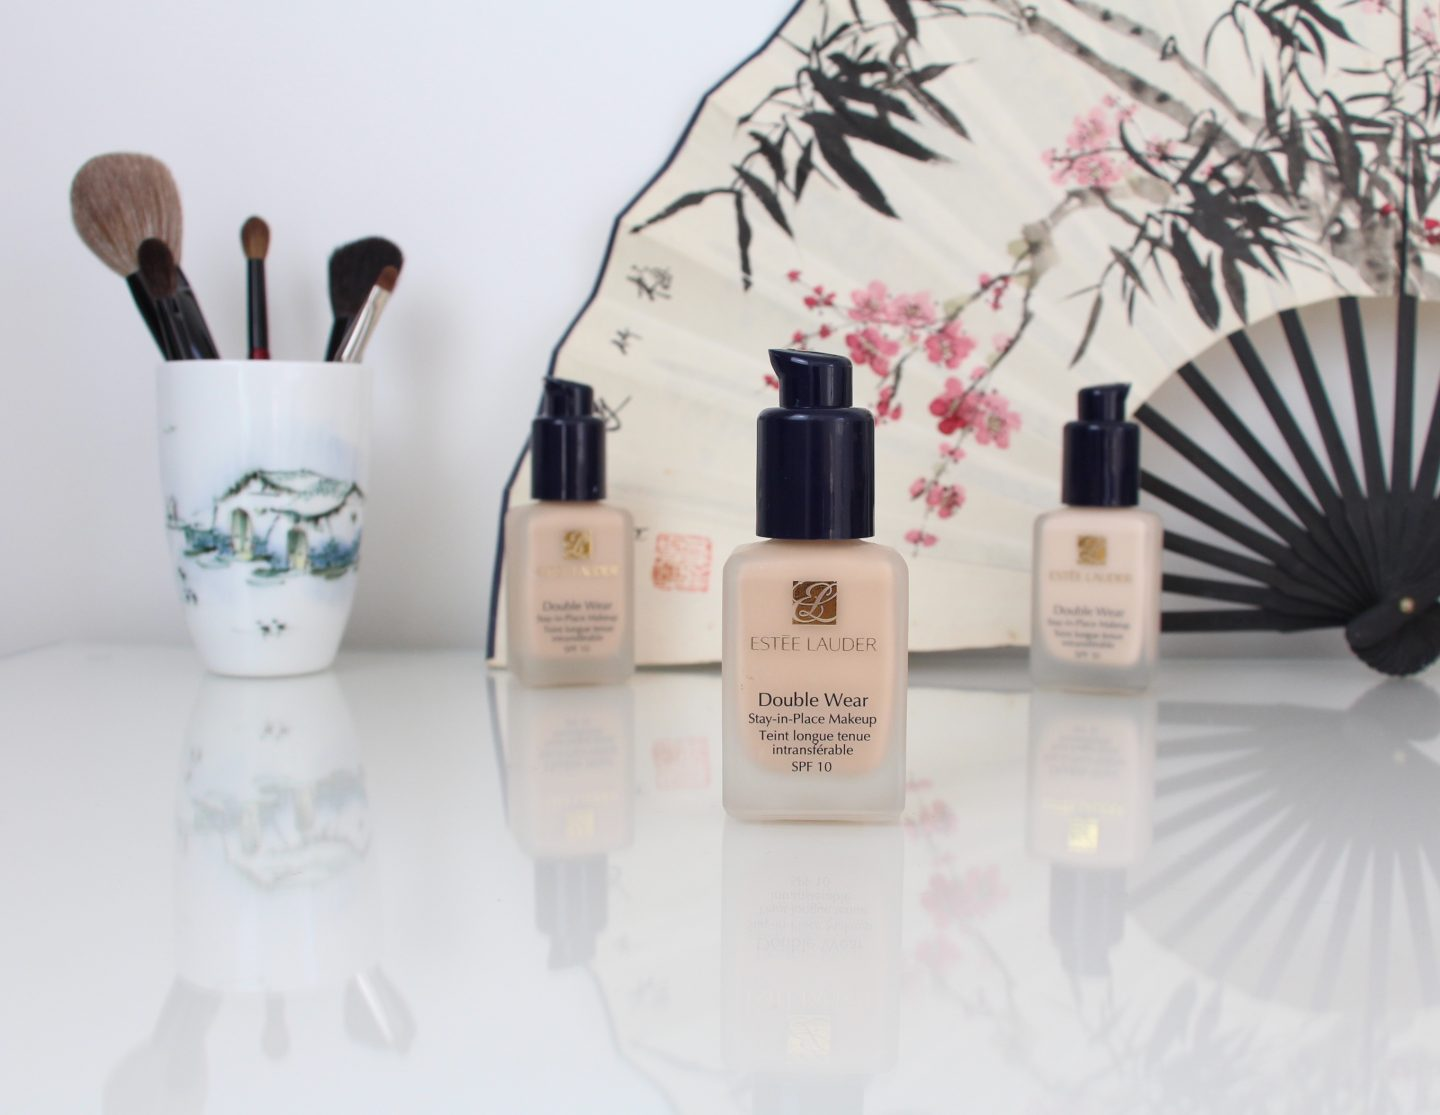 Estee Lauder Double Wear Stay-in-Place Makeup SPF10 Foundation Picture